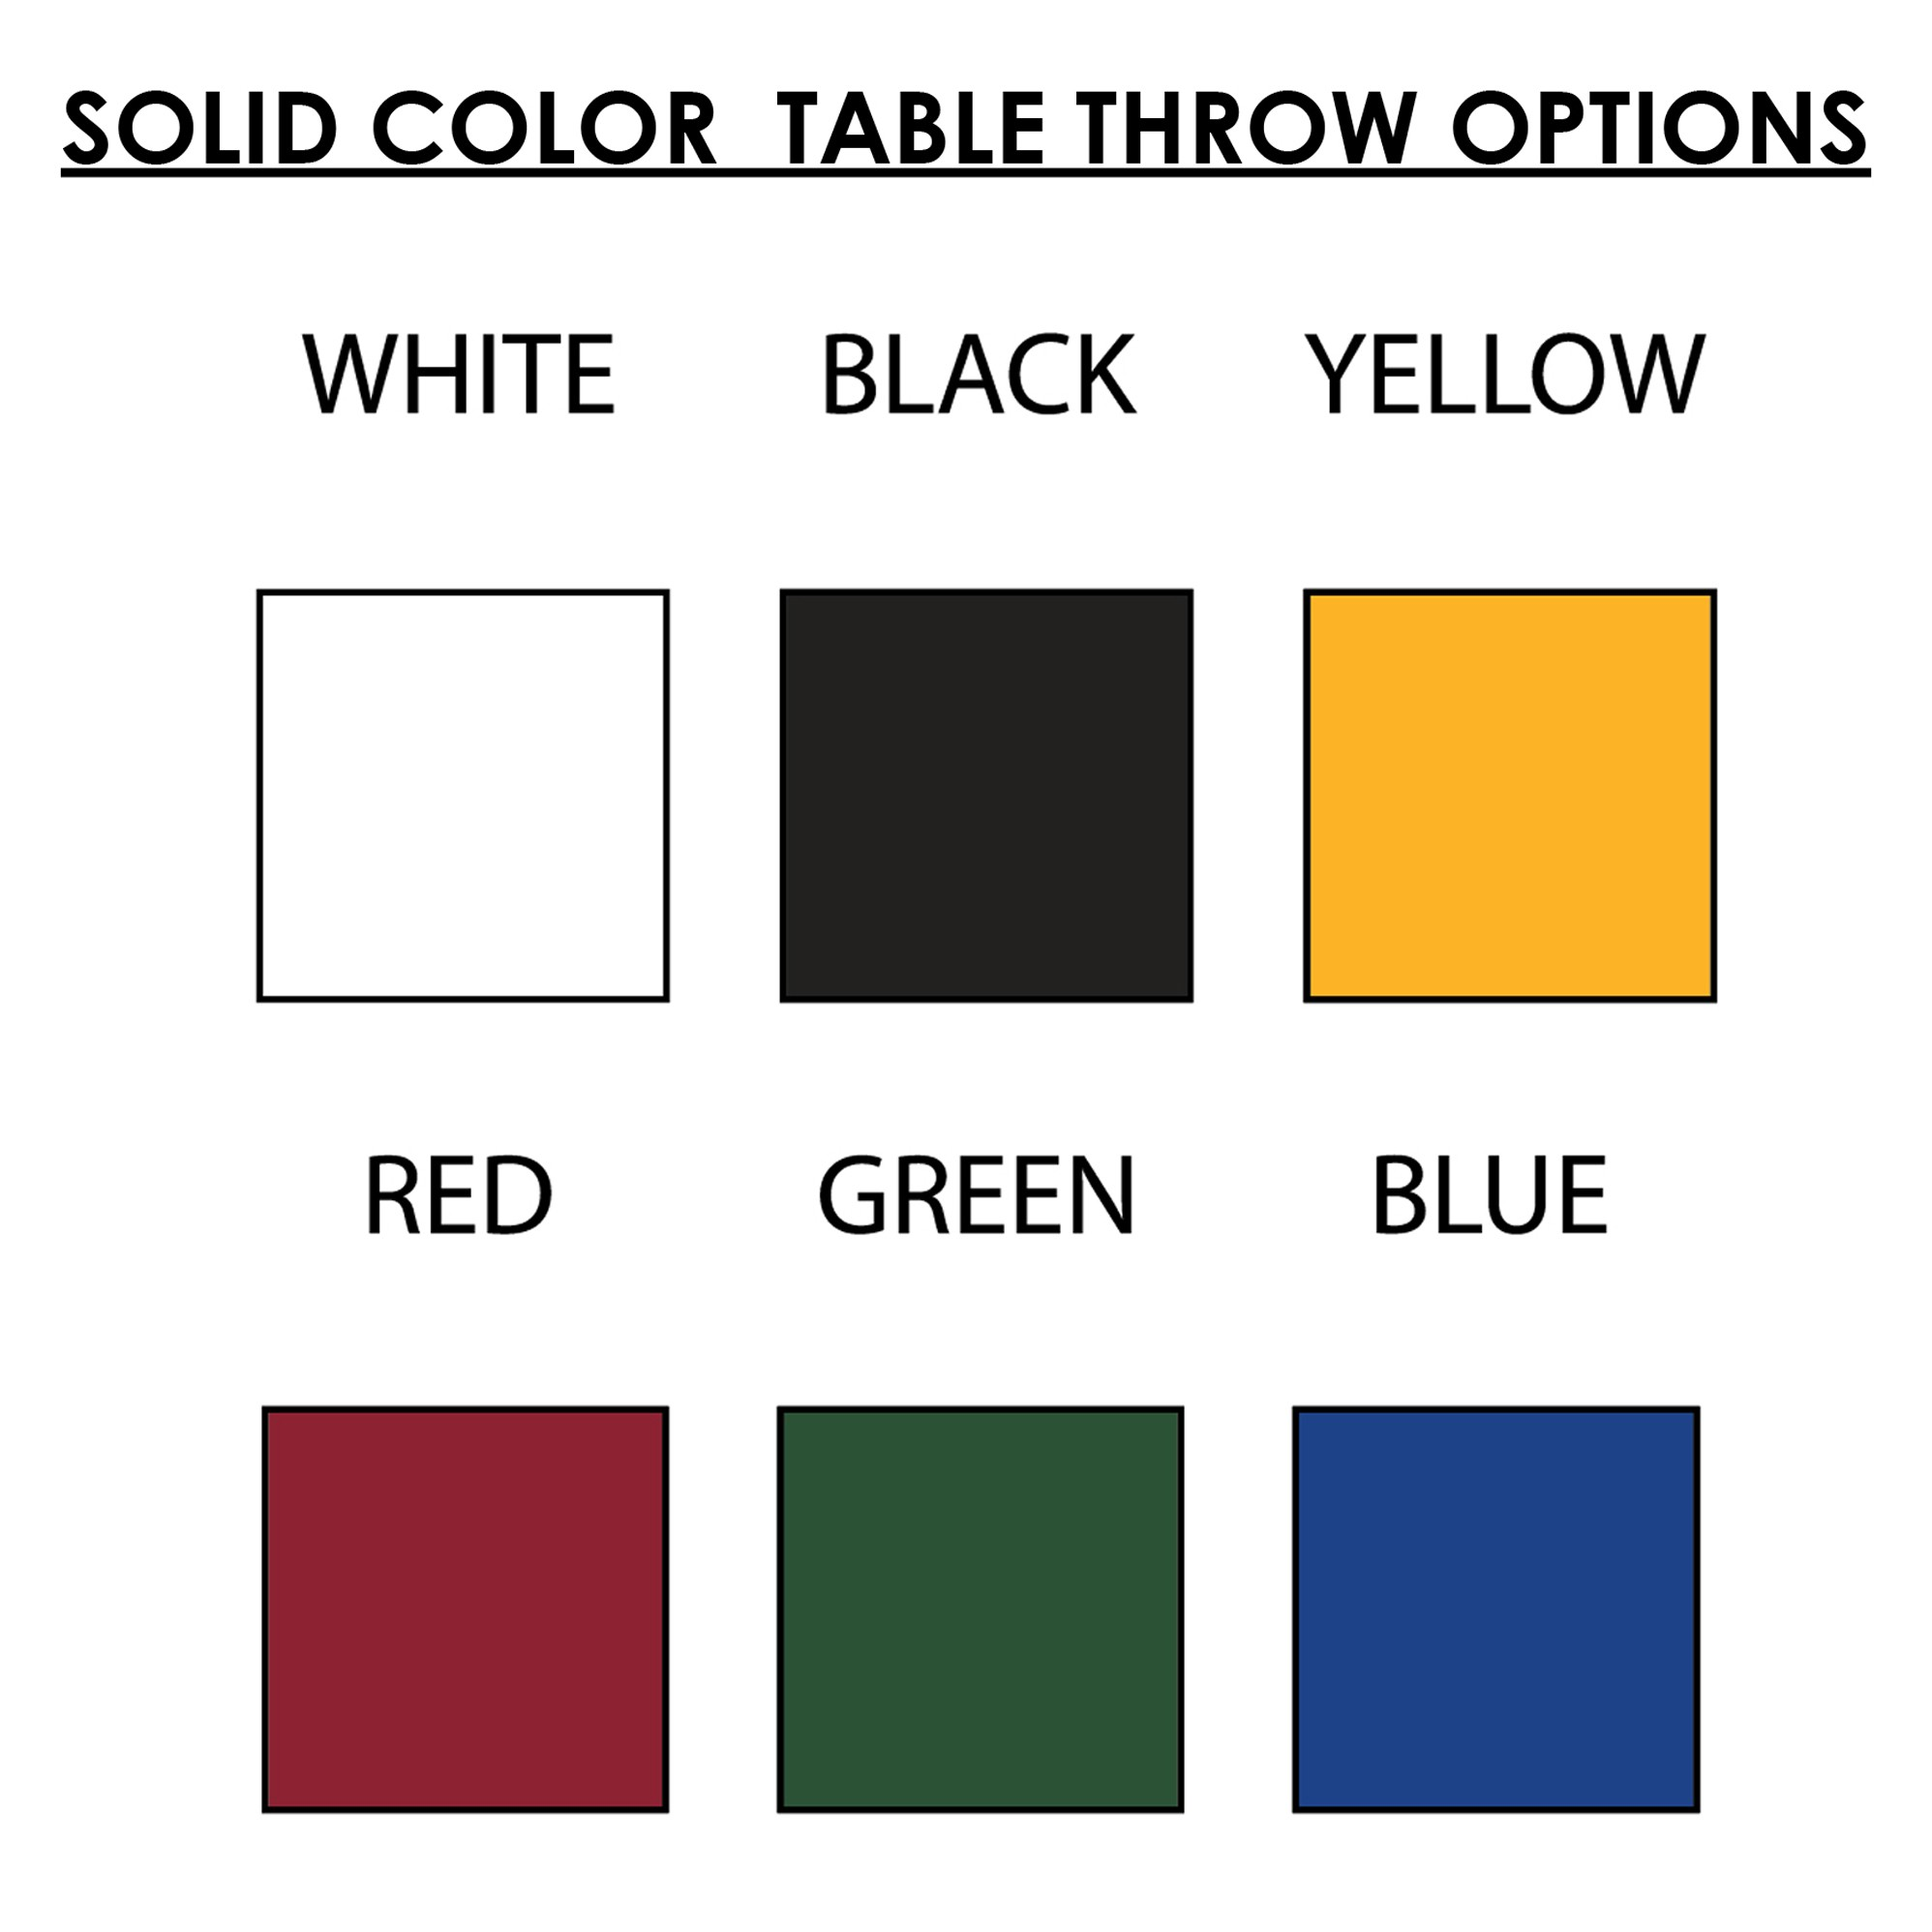 Solid Color Table Throw Options